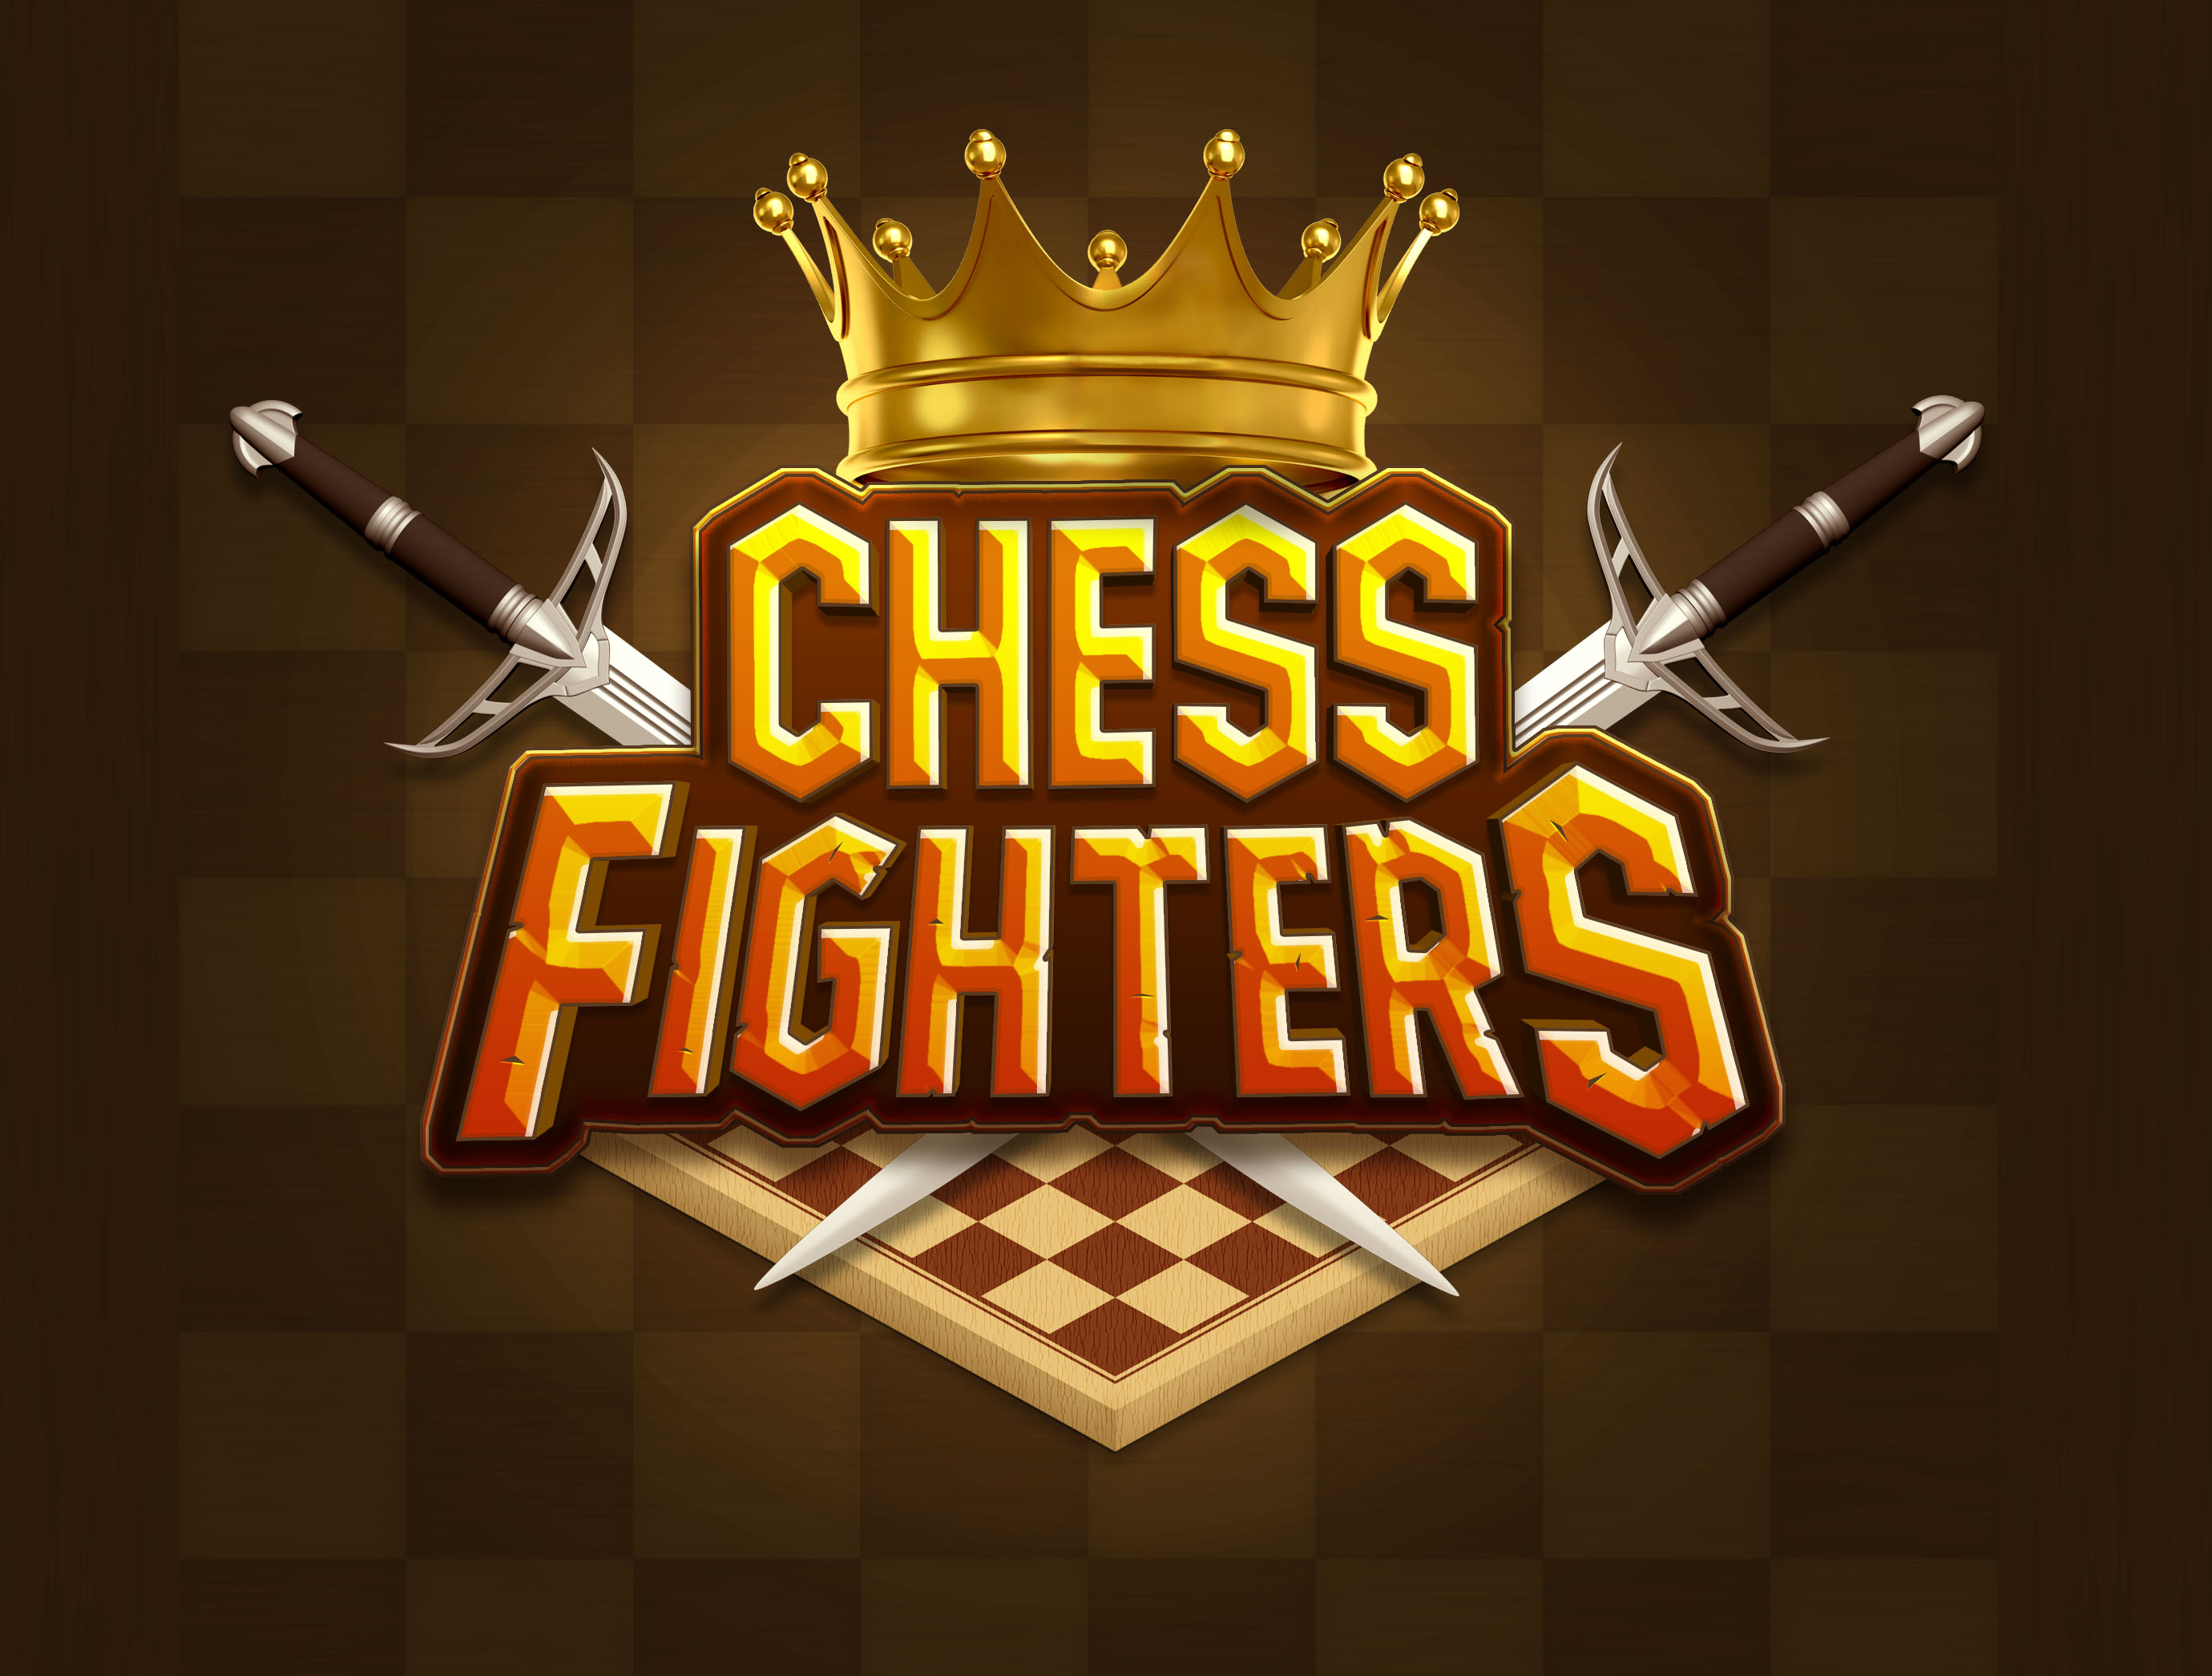 Chess Fighters